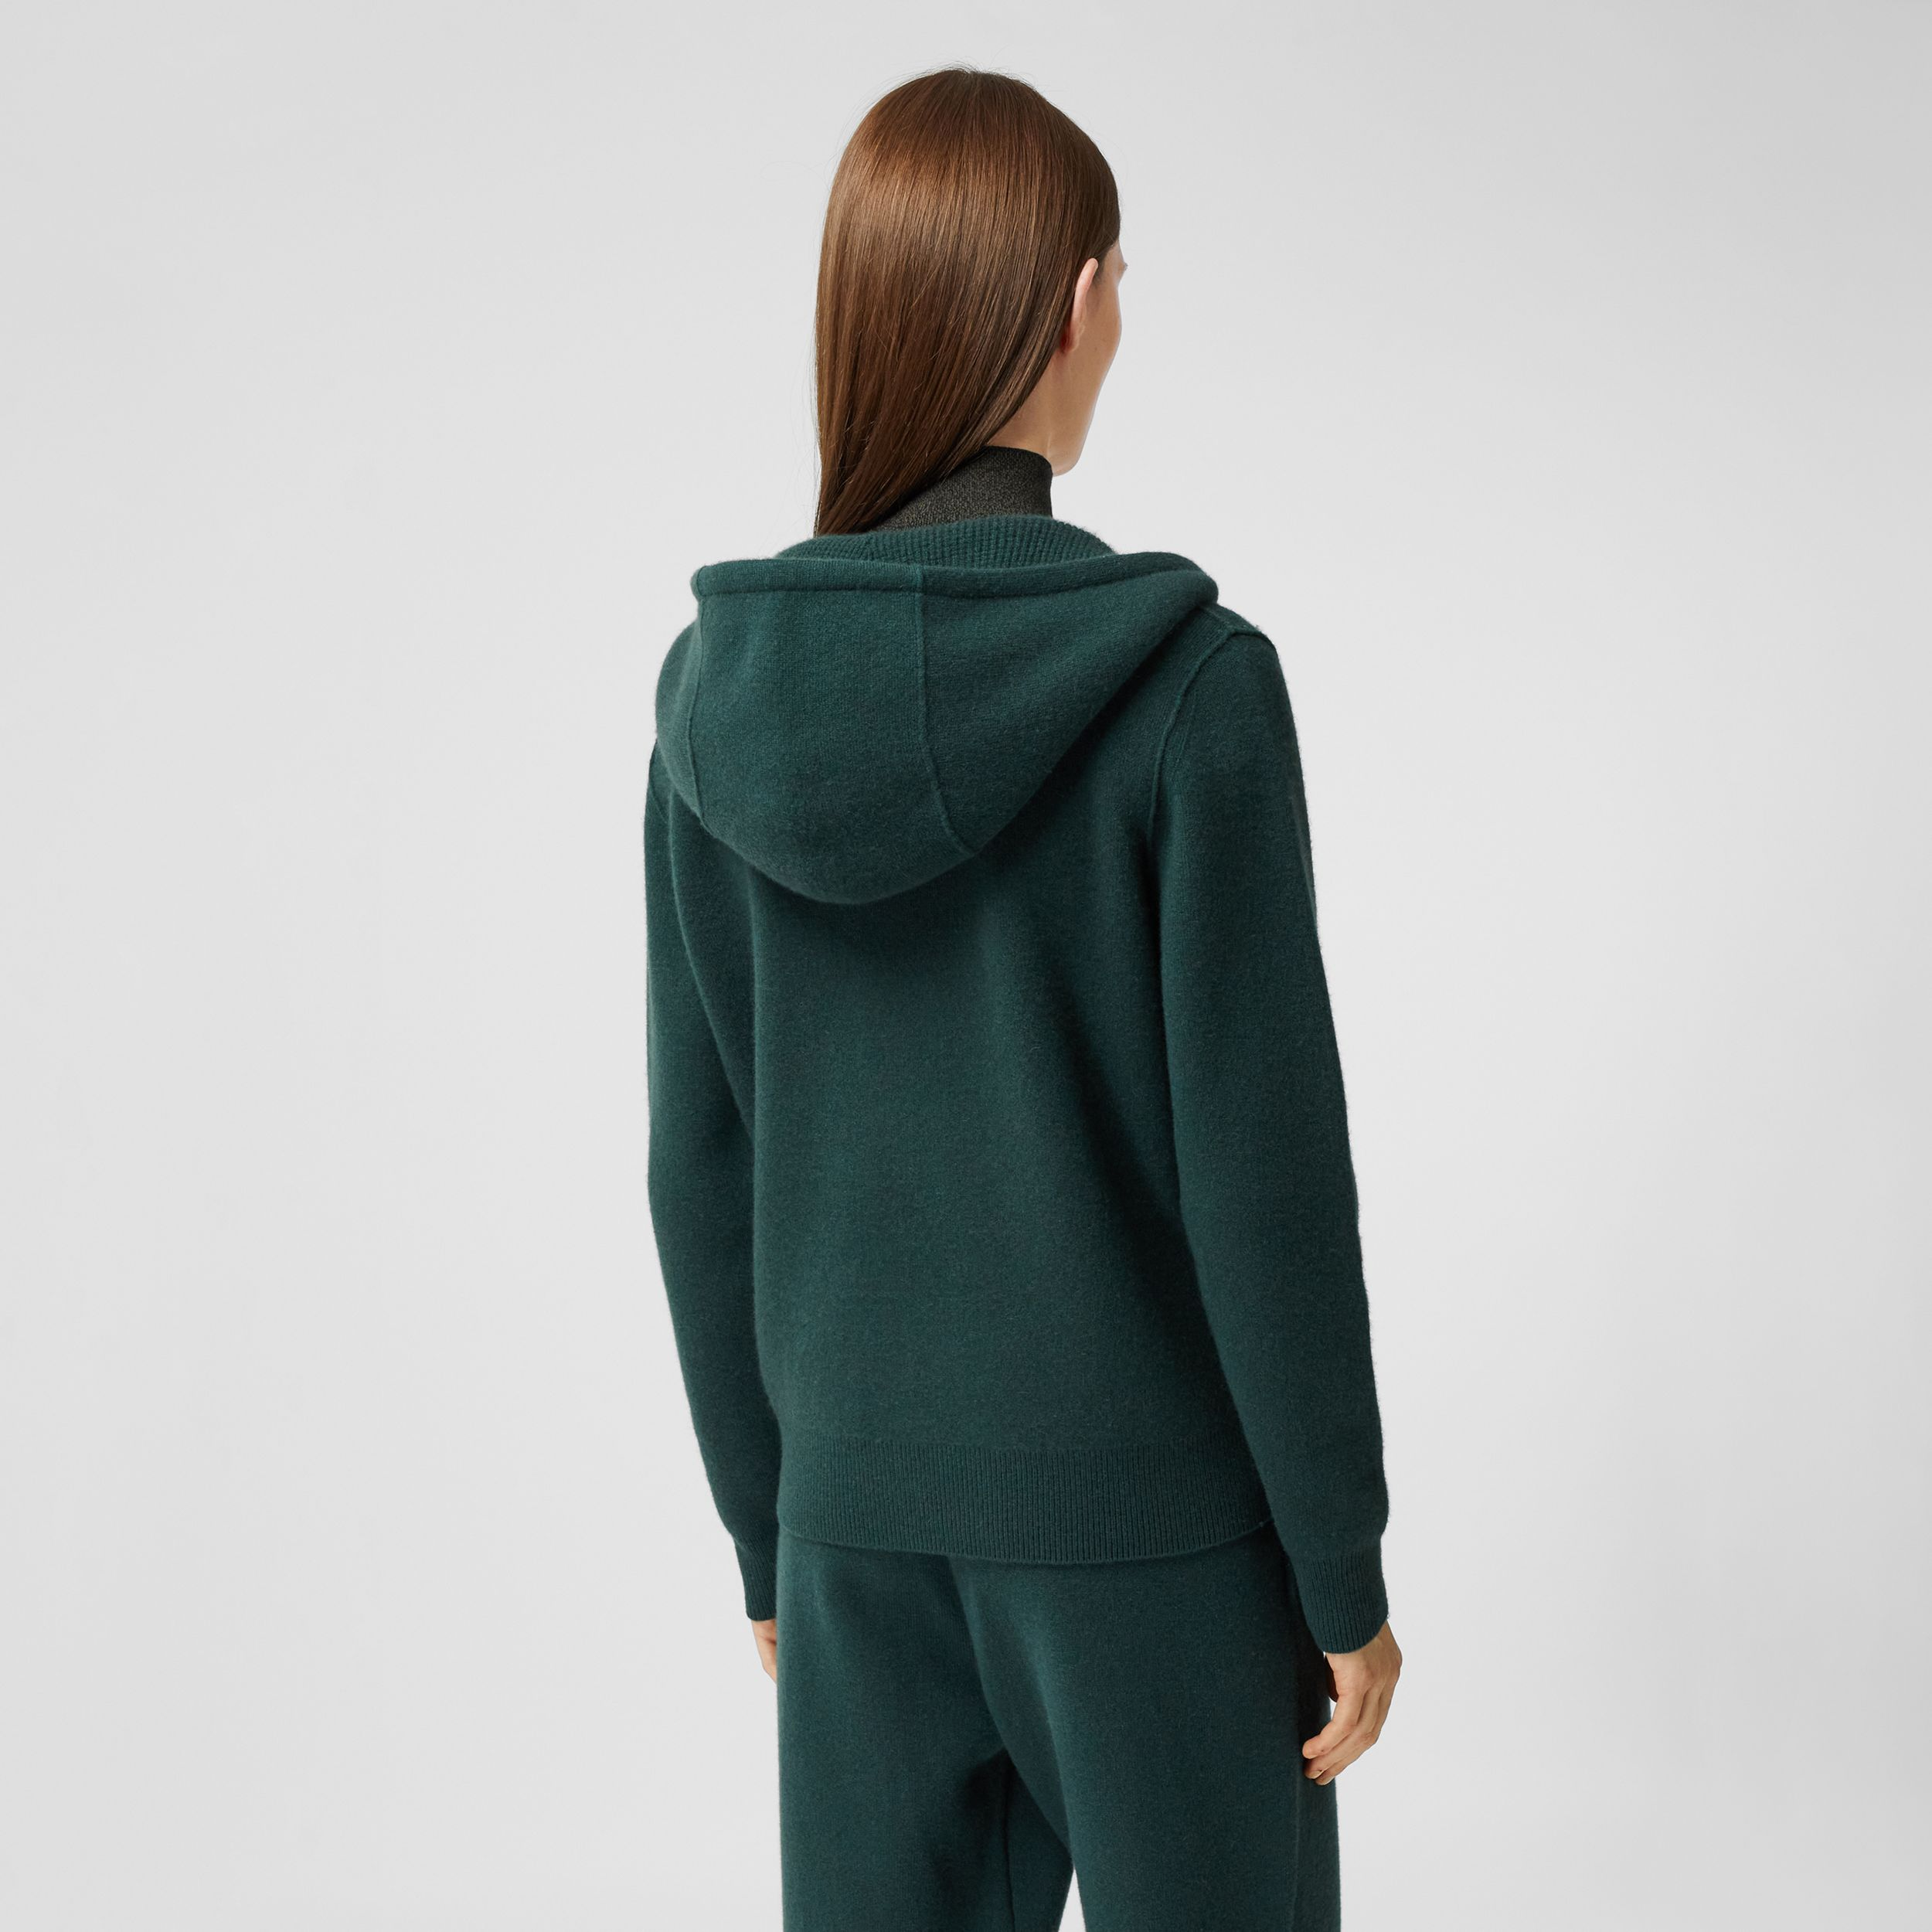 Monogram Motif Cashmere Blend Hooded Top in Bottle Green - Women | Burberry - 3